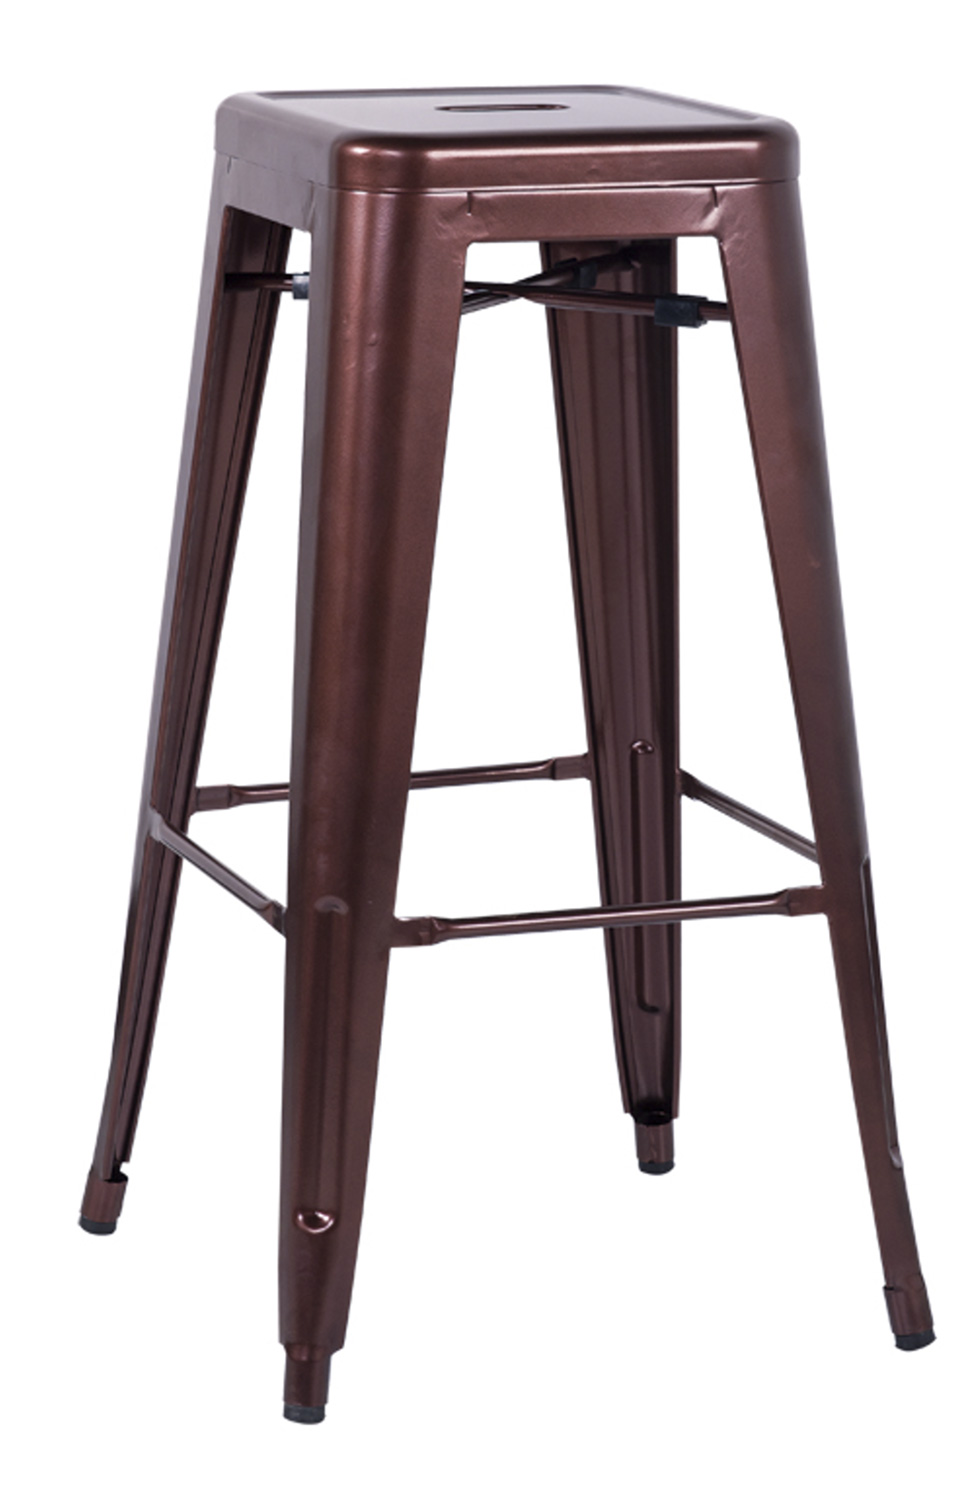 Chintaly Imports 8015 Galvanized Steel Bar Stool - Red Copper